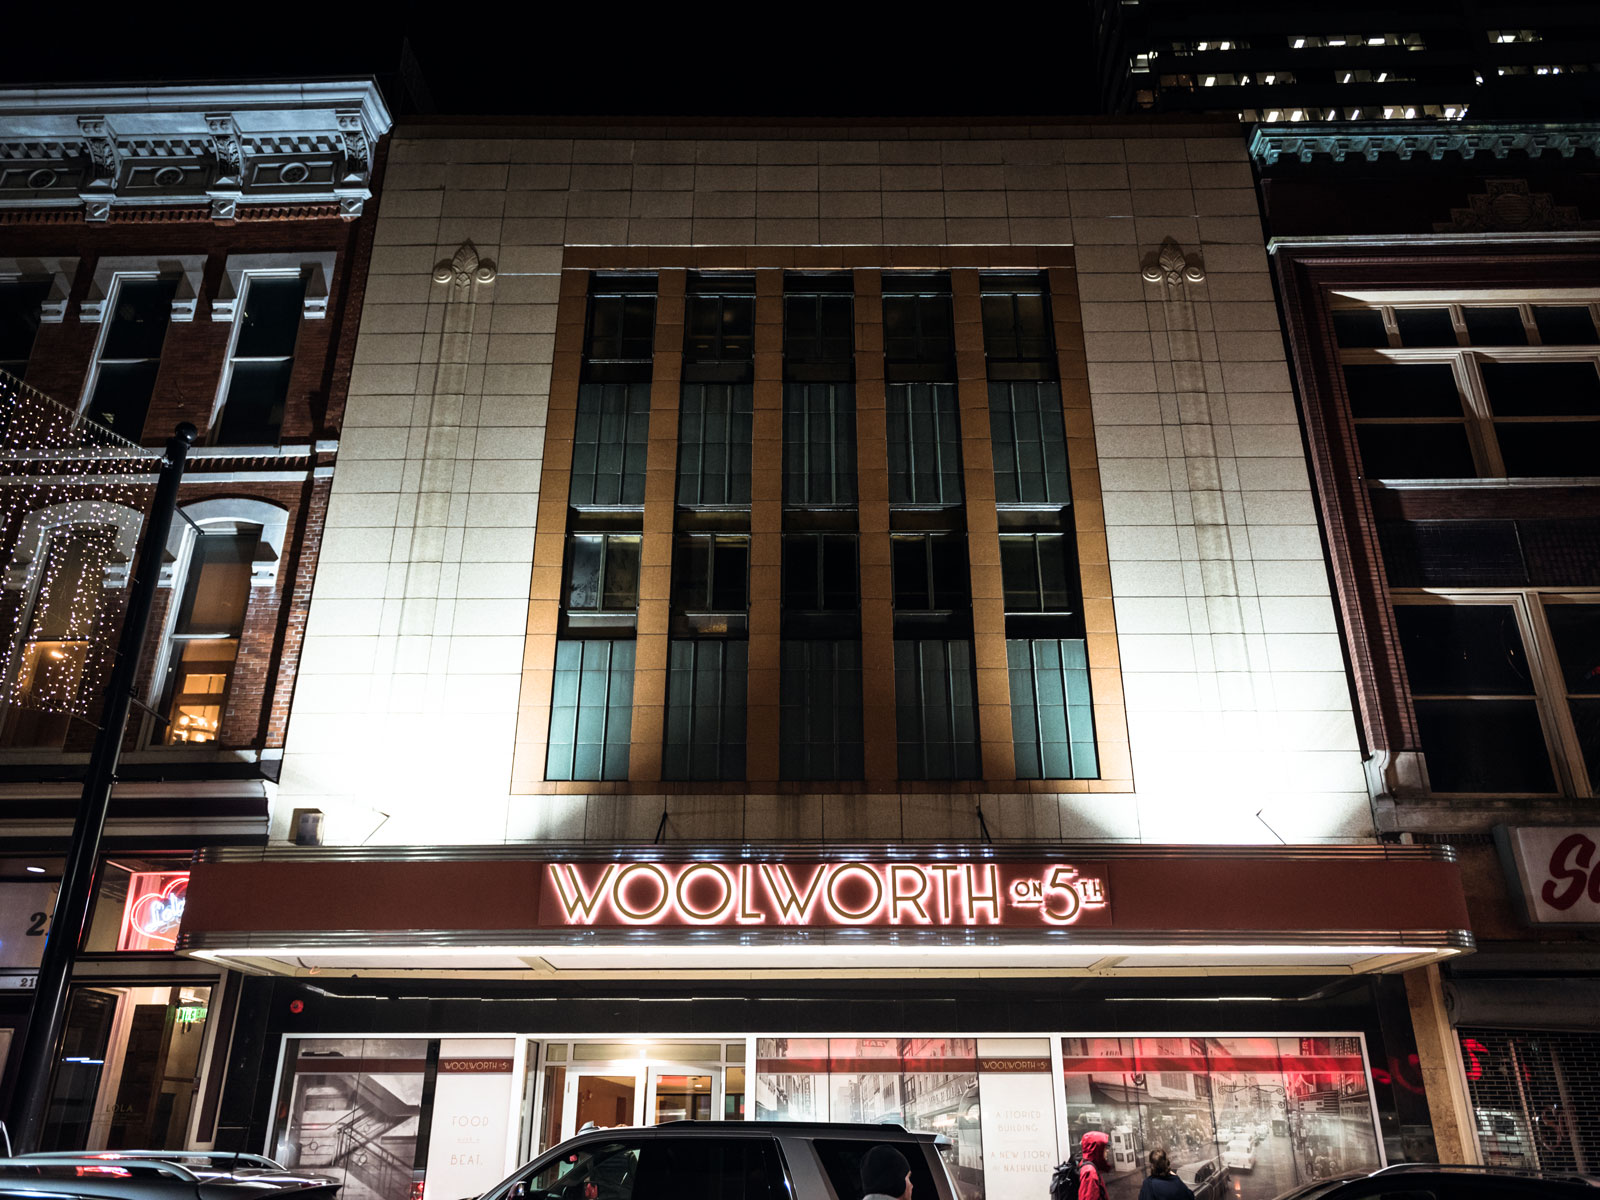 Woolworth on 5th